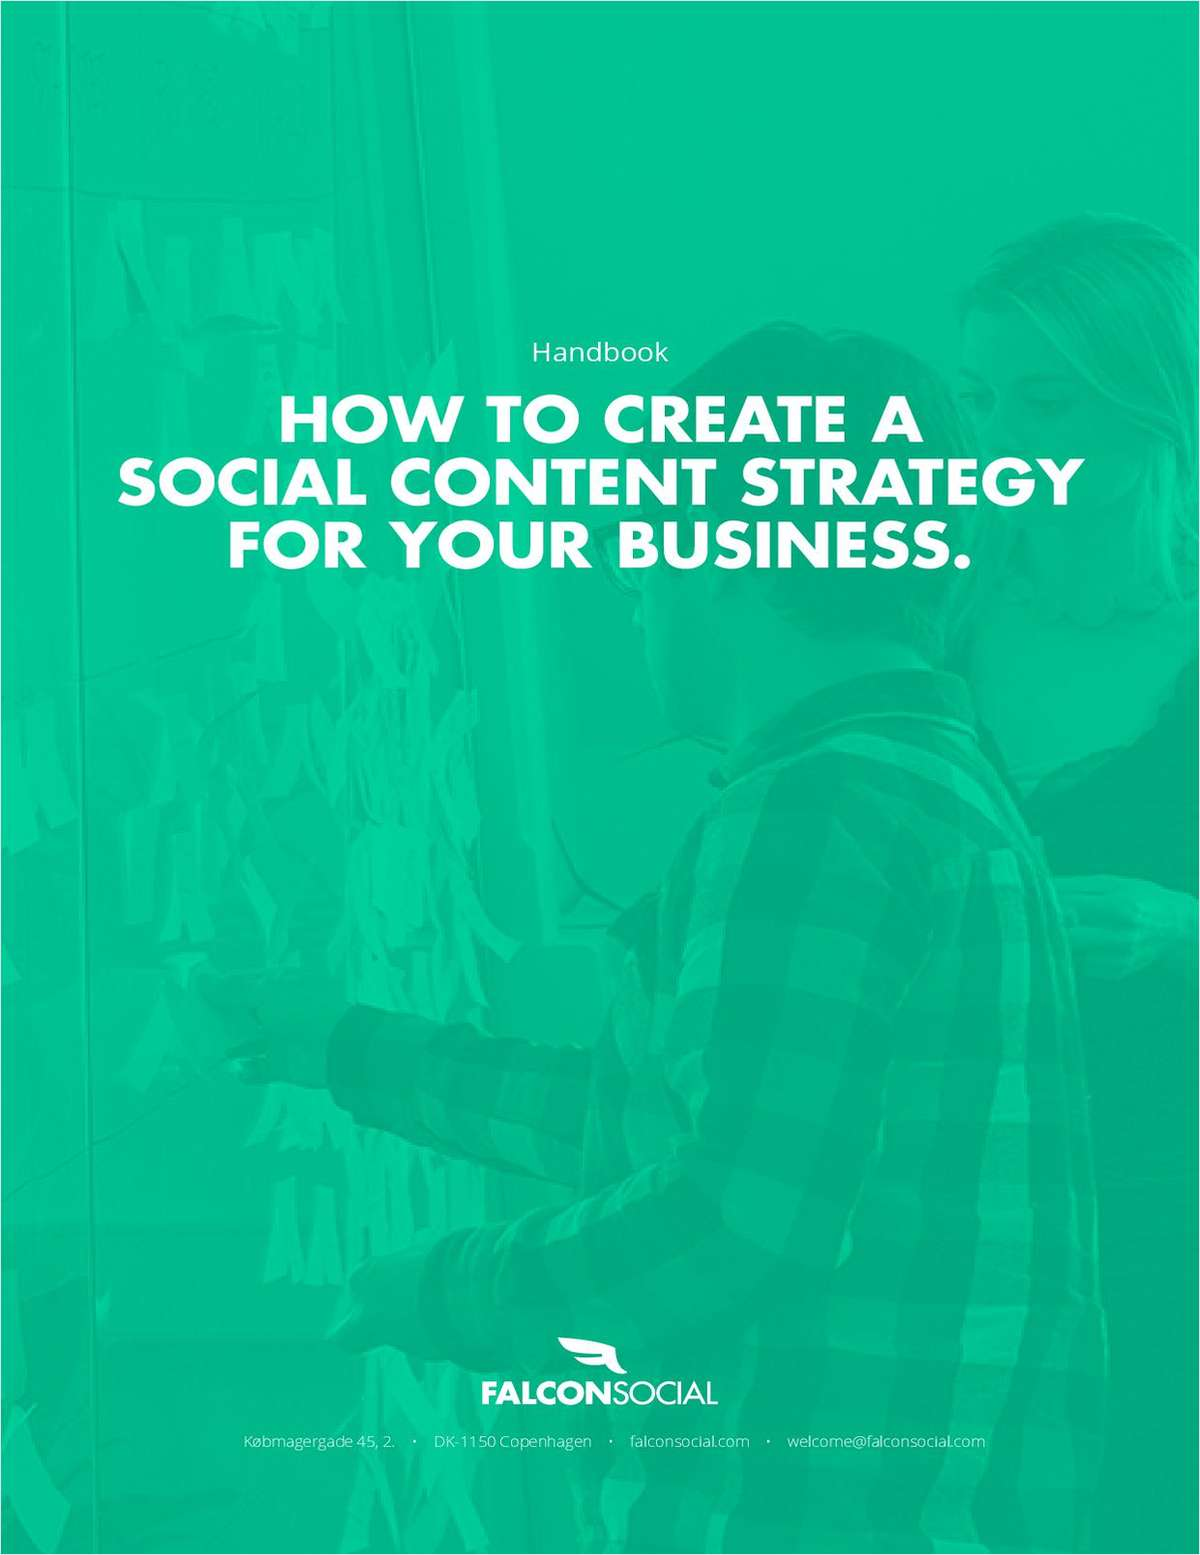 How To Create A Social Content Strategy For Your Business